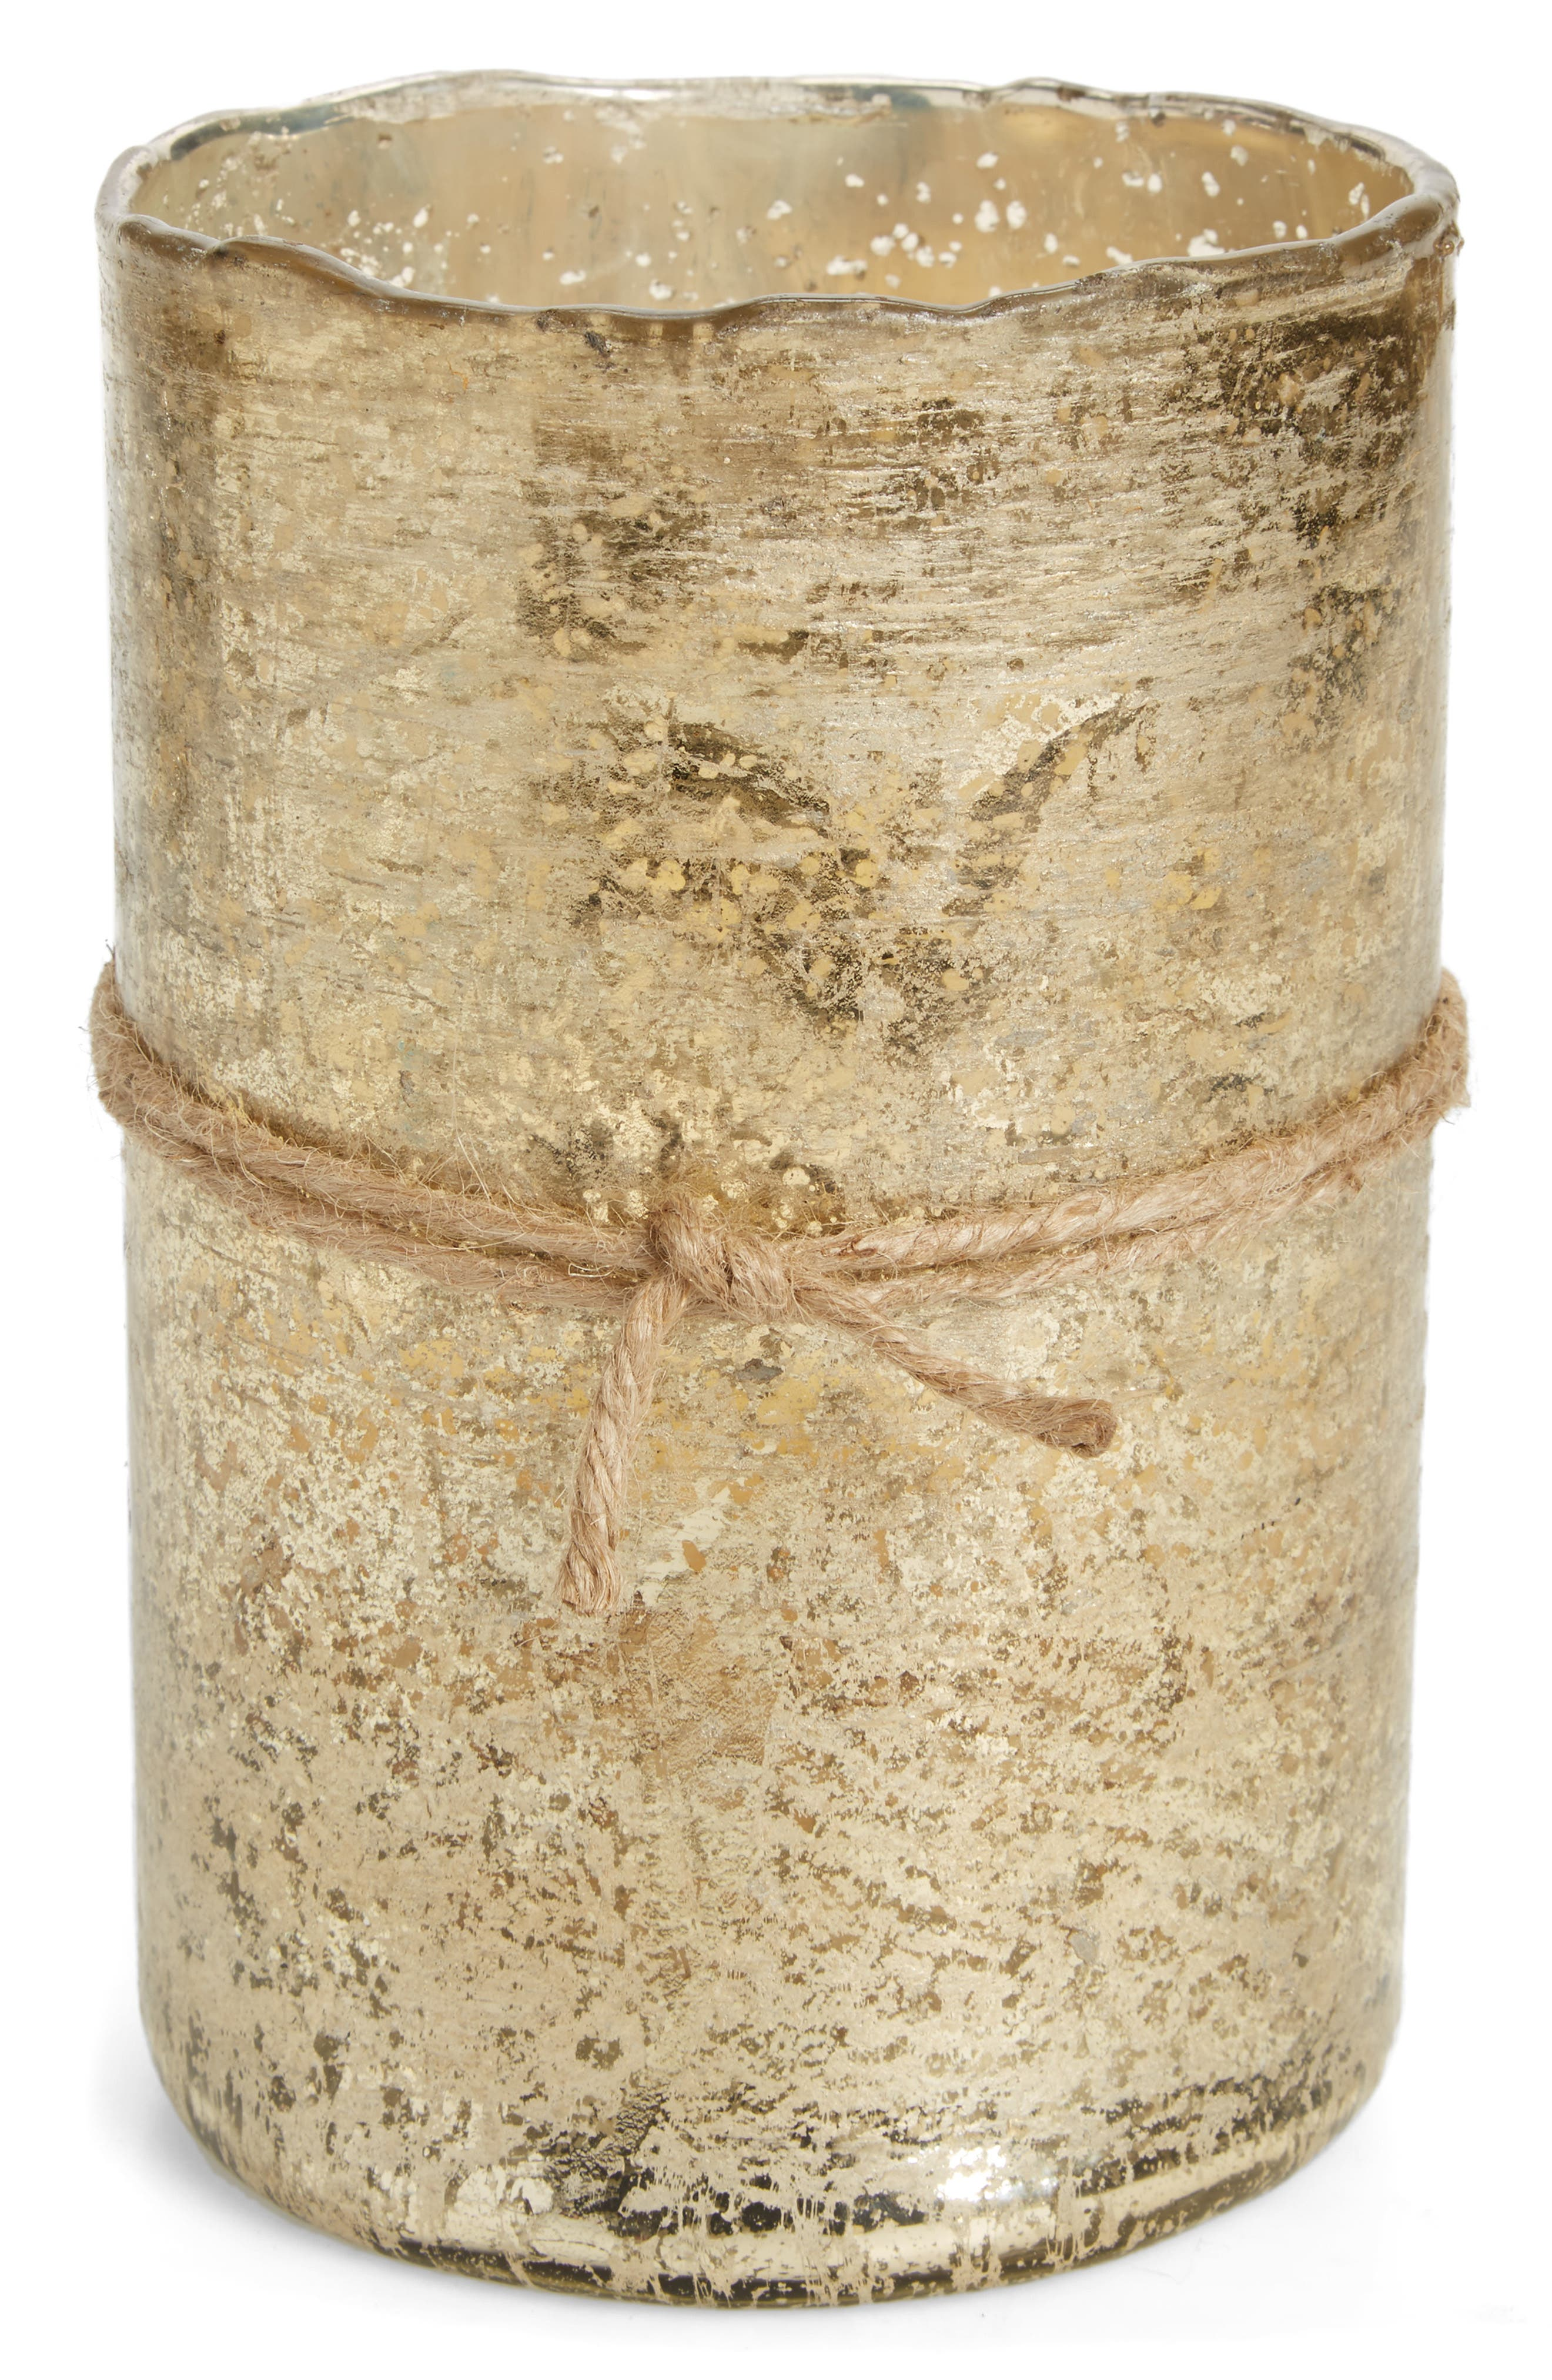 Himalayan Trading Post Scented Gold Hurricane Candle